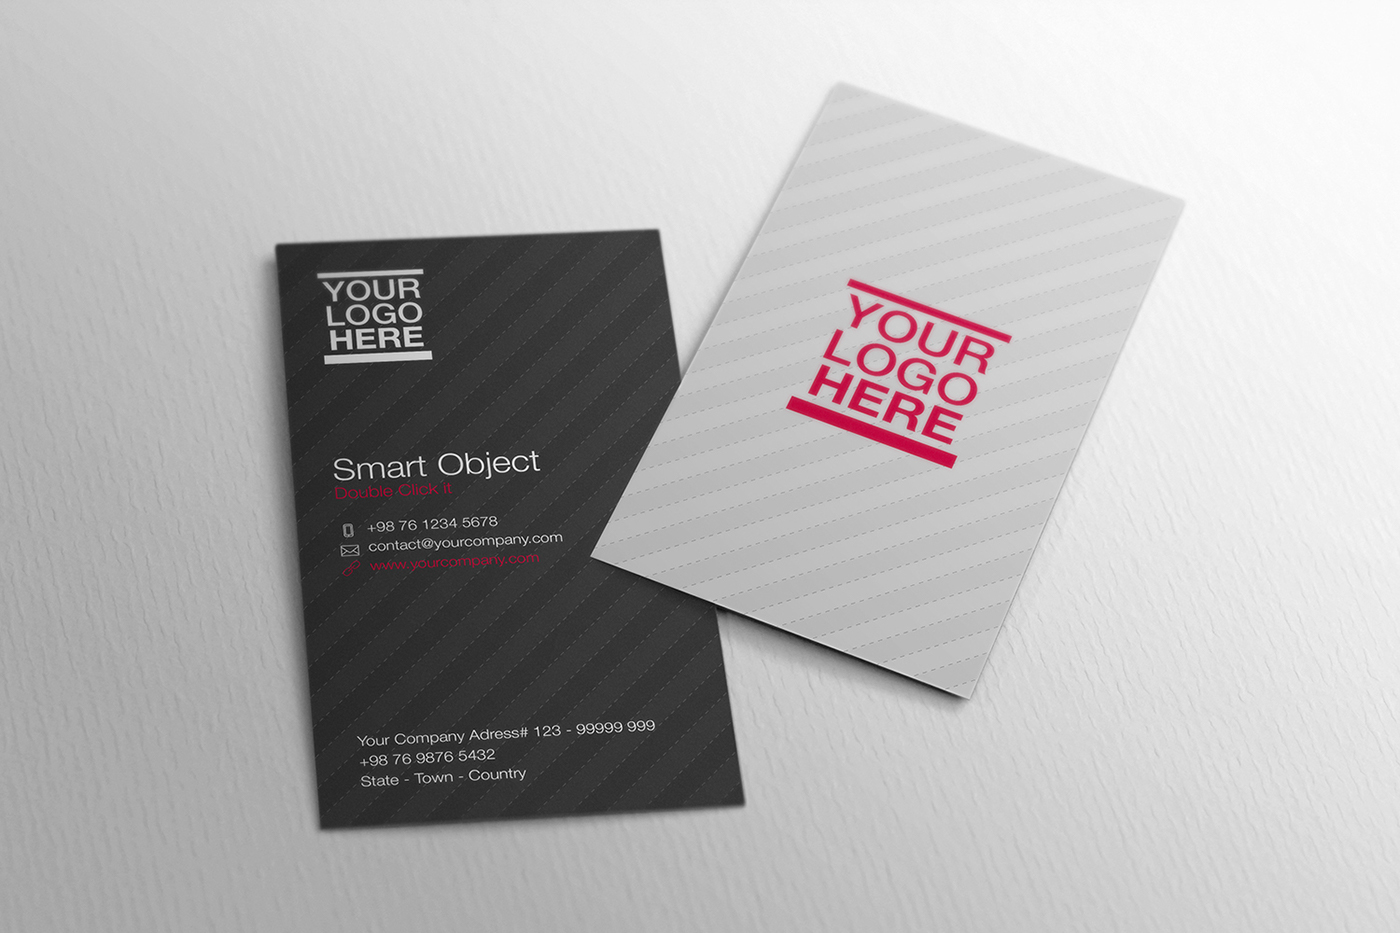 70 free psd business card mockups for great deals free psd templates free psd mockup business card fe276c19626467562dd8ed8408d colourmoves